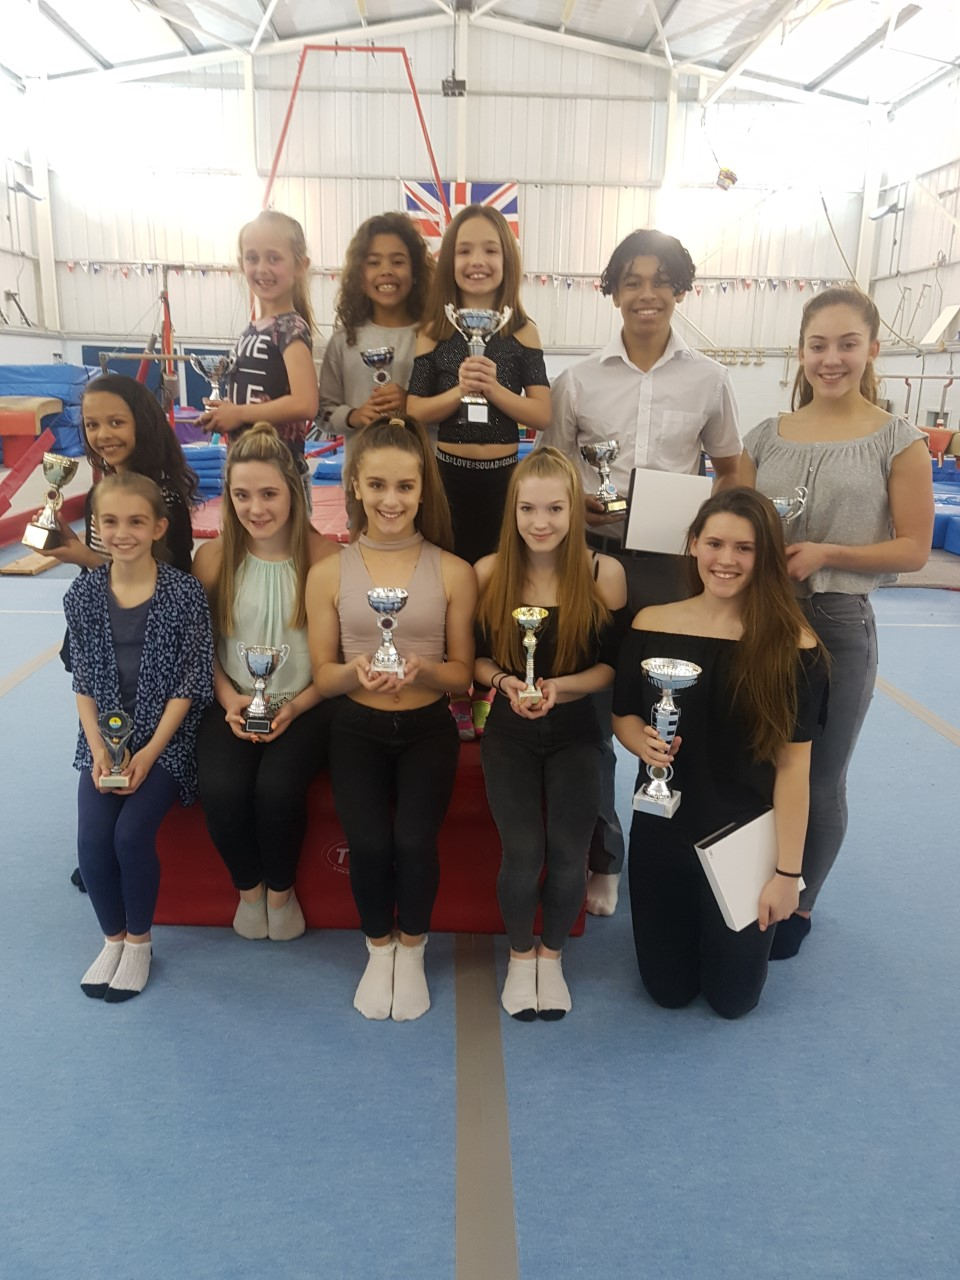 Star Performers At Bulmershe Gymnastics Club Honoured Awards Night The Award Winners